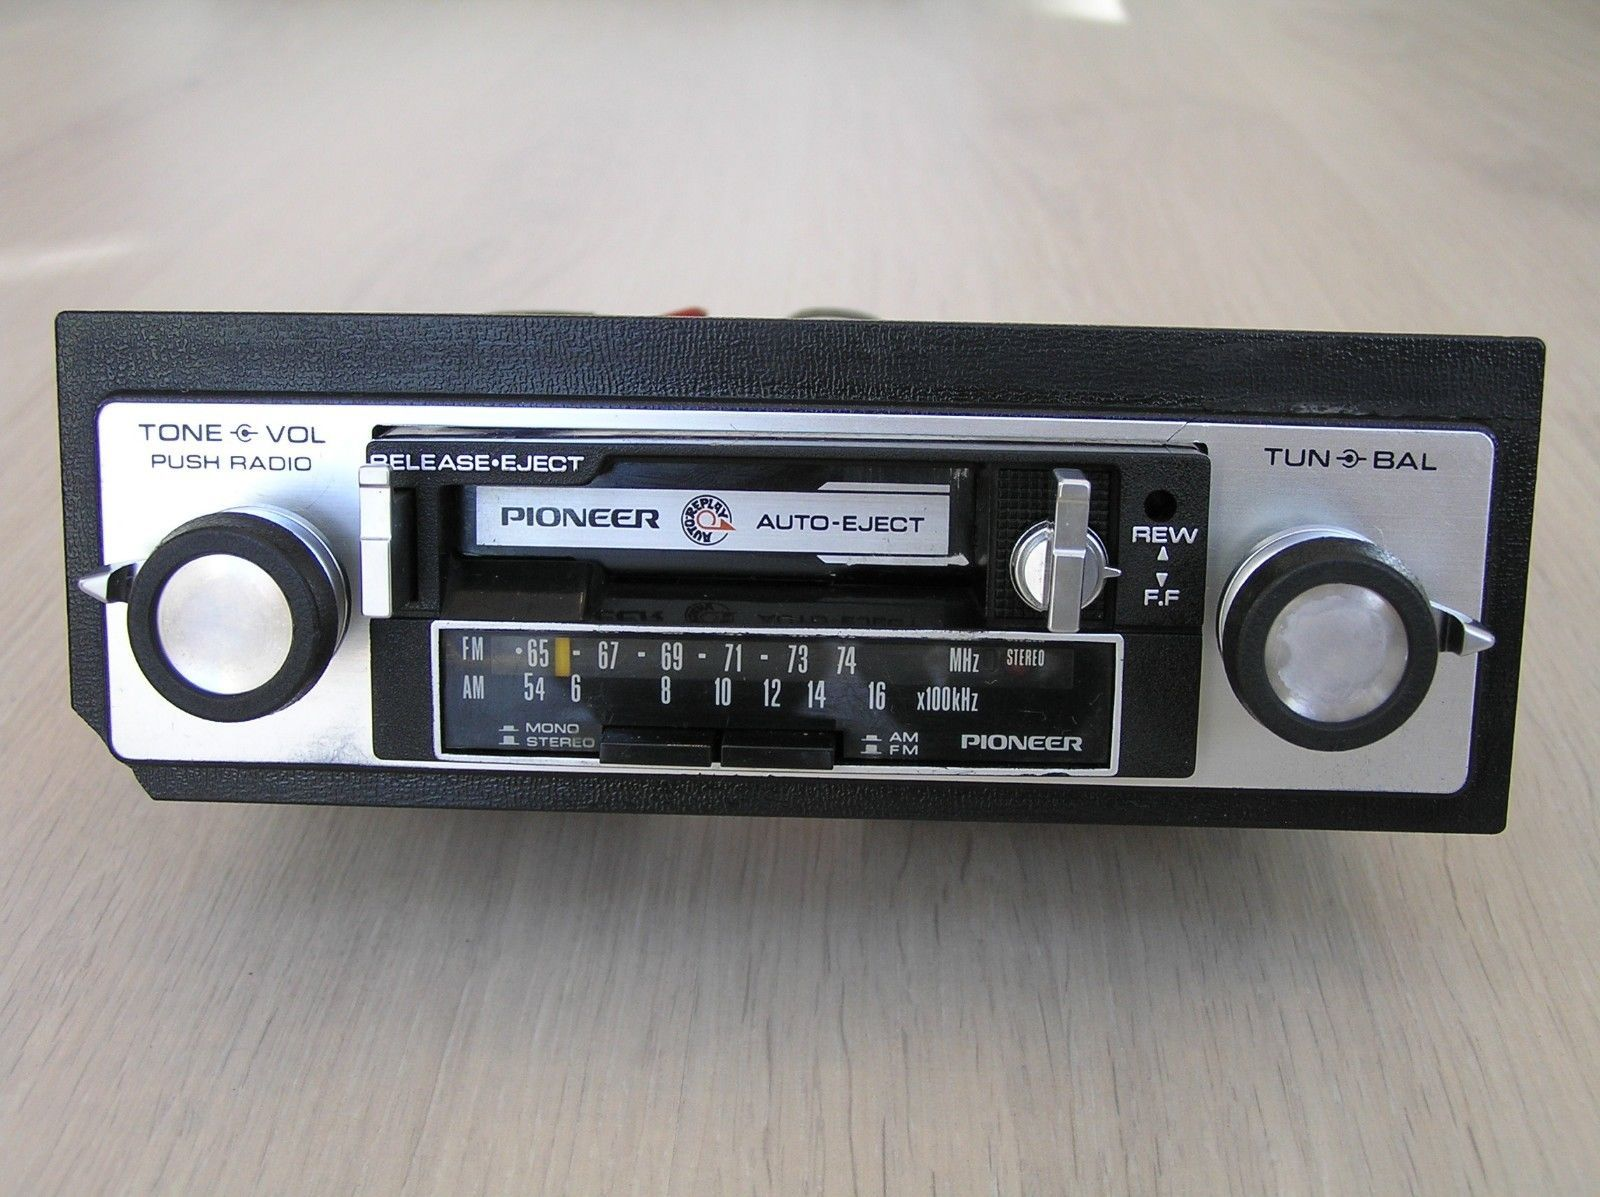 The code for the car audio recorder Ford Fokus II